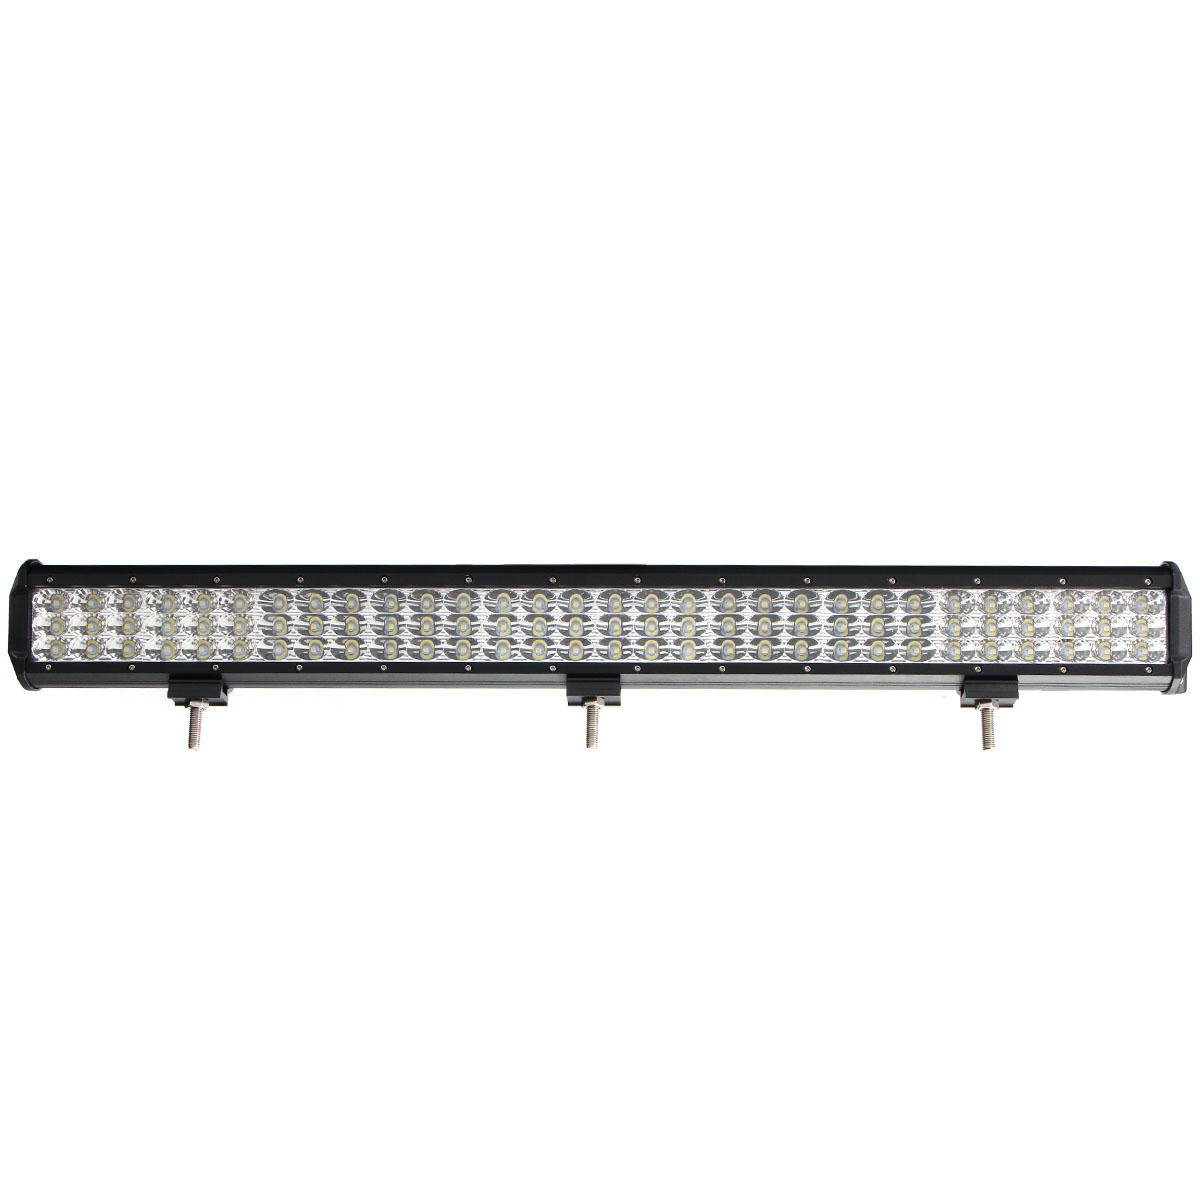 28 Inch 450W LED Light Bar Flood Spot Combo Off Road Car Truck 10-30V